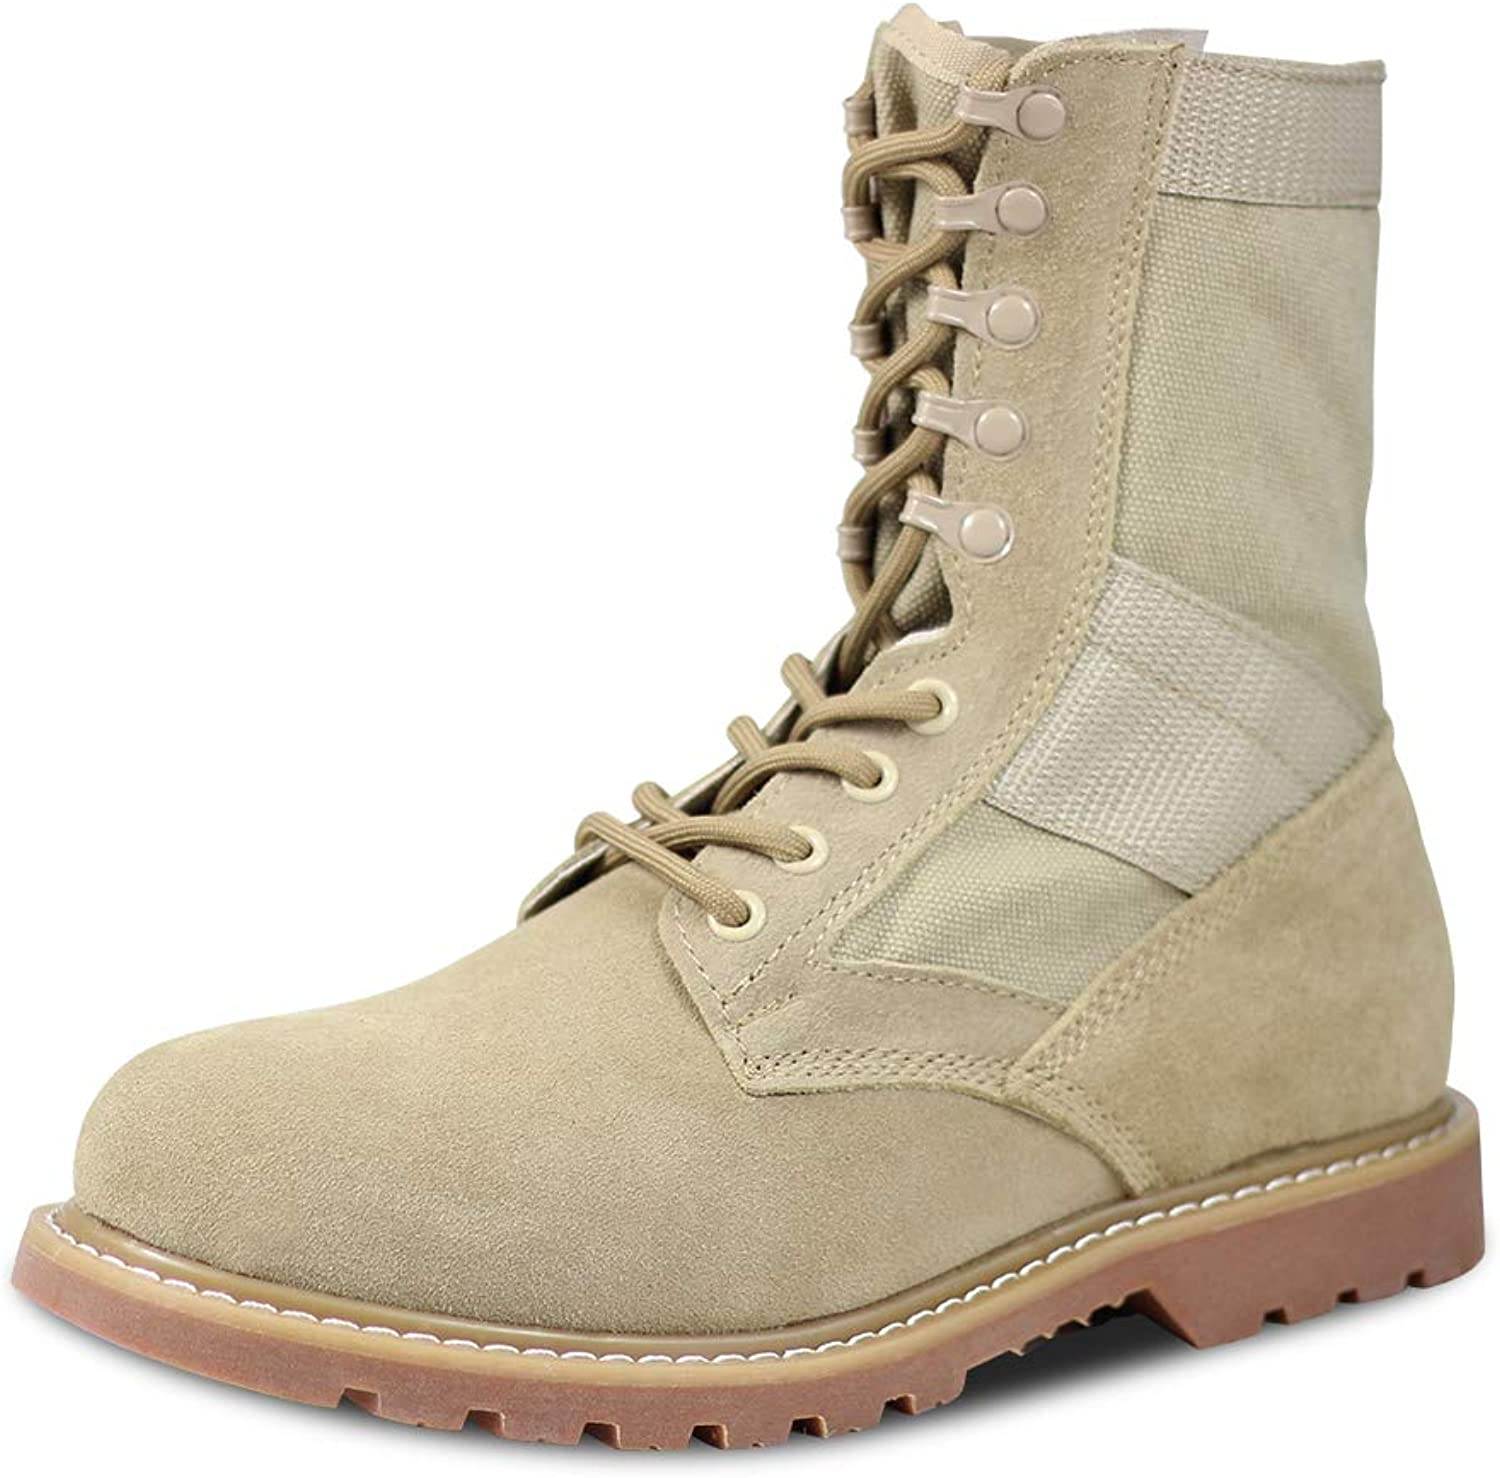 LUDEY Men's Military Boots Leather Nylon Work & Safety Boots Tactical Boots Outdoor Water Resistant Boots Leather Tan IDS-681